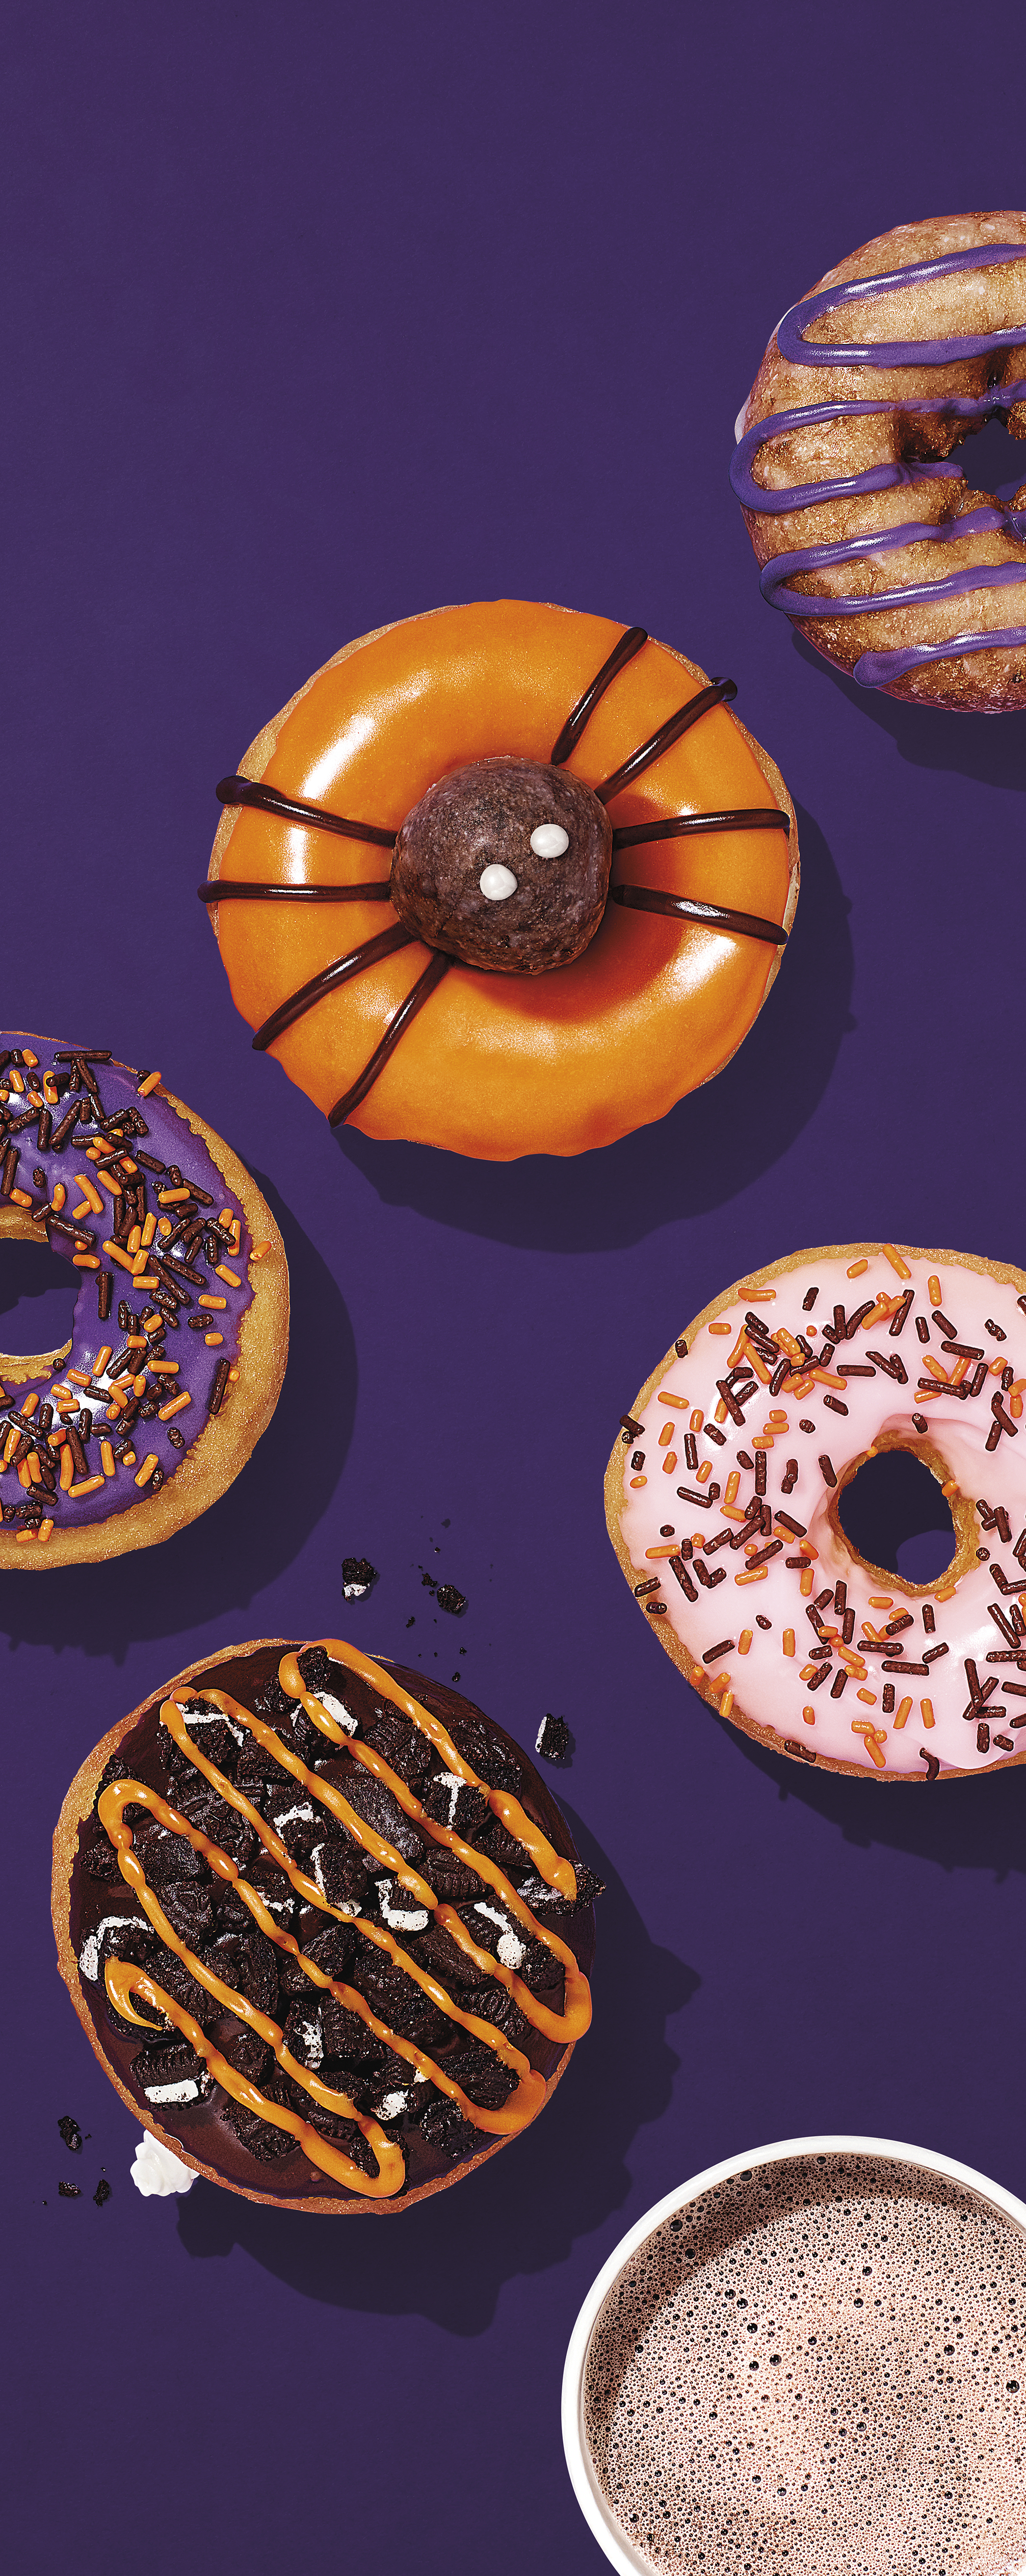 Dunkin Donuts Halloween Donuts 2020 Dunkin' Celebrates Halloween with OREO® this October | Dunkin'